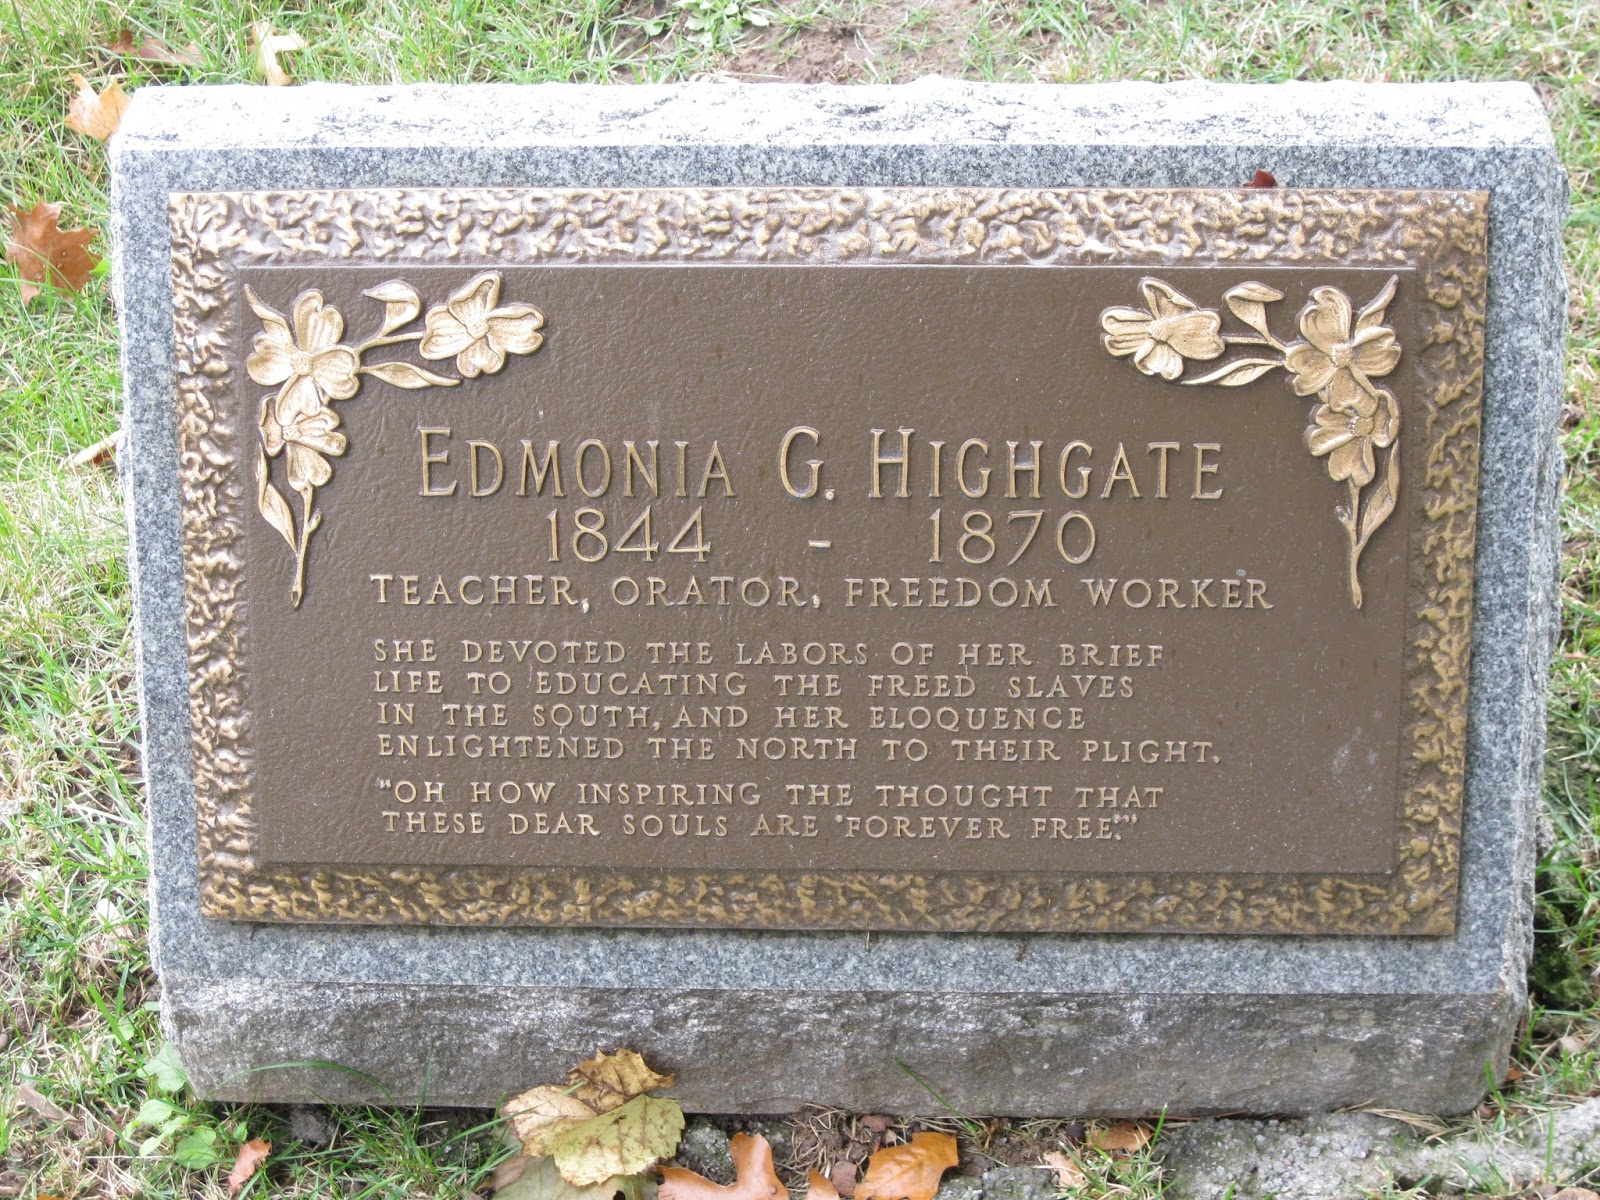 Edmonia Highgate: Teacher, Orator, Freedom Worker